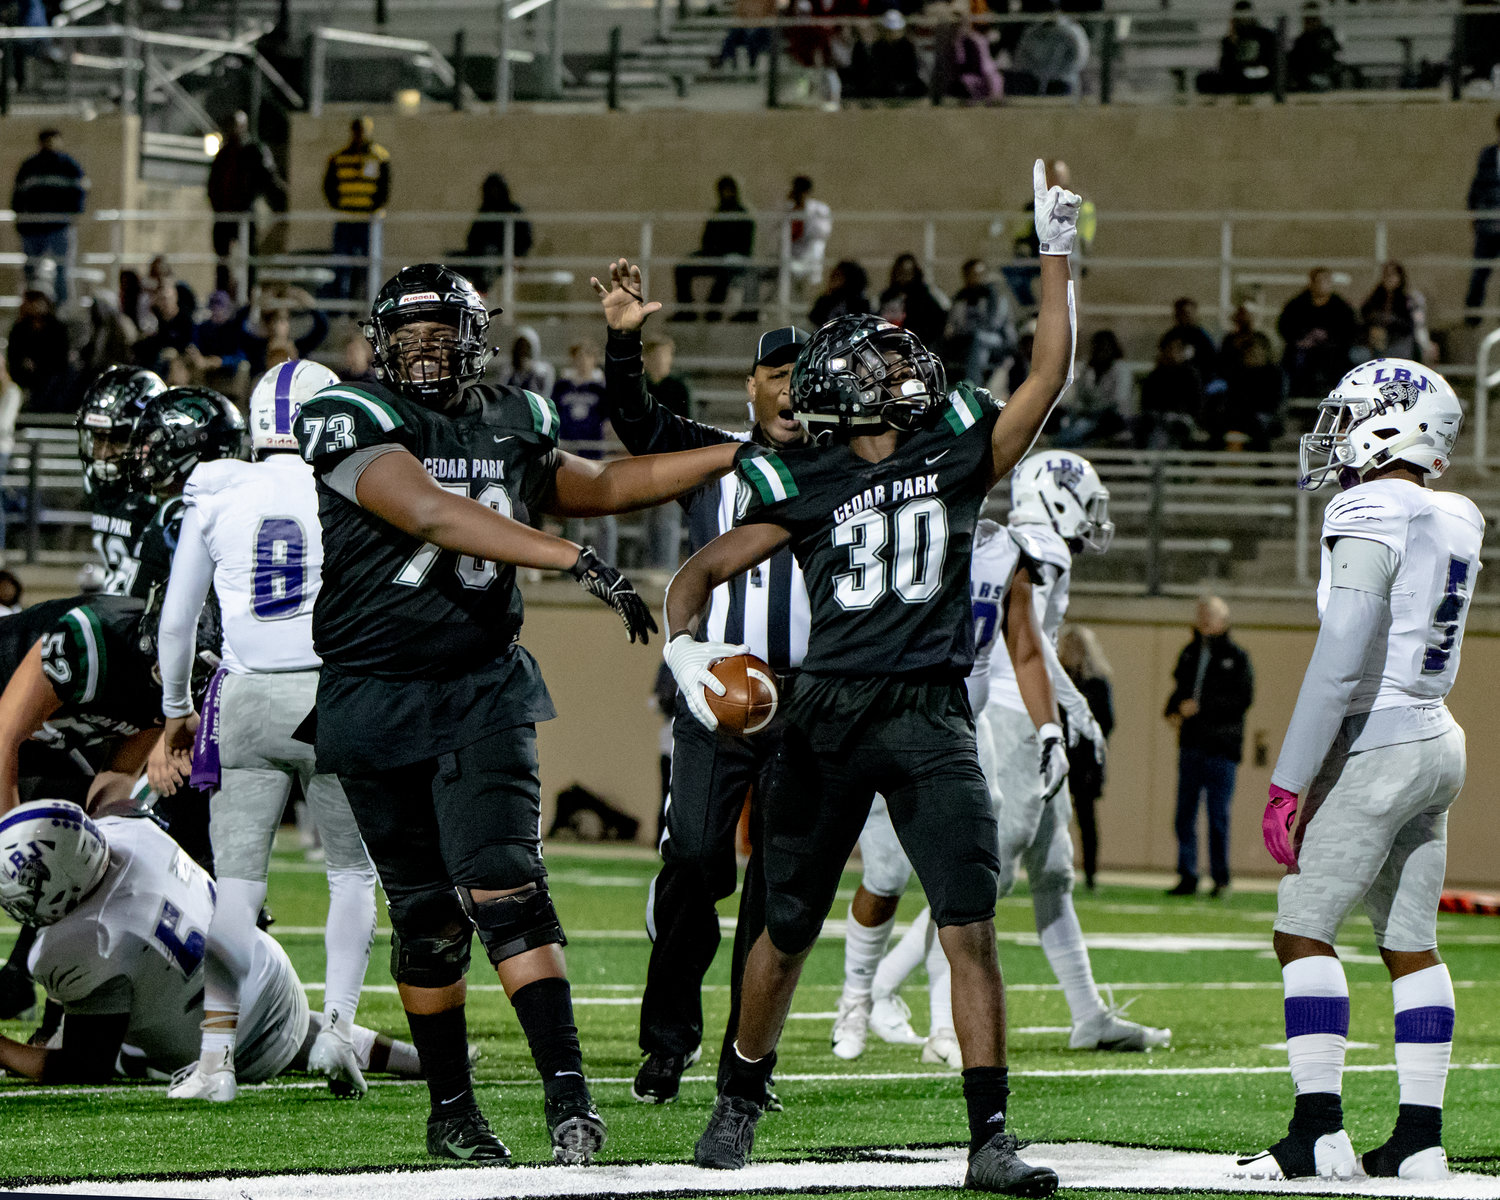 Javion Mays, right, scored Cedar Park's only touchdown in its win against Austin LBJ last Friday. The Timberwolves take on undefeated Shadow Creek in the second round.